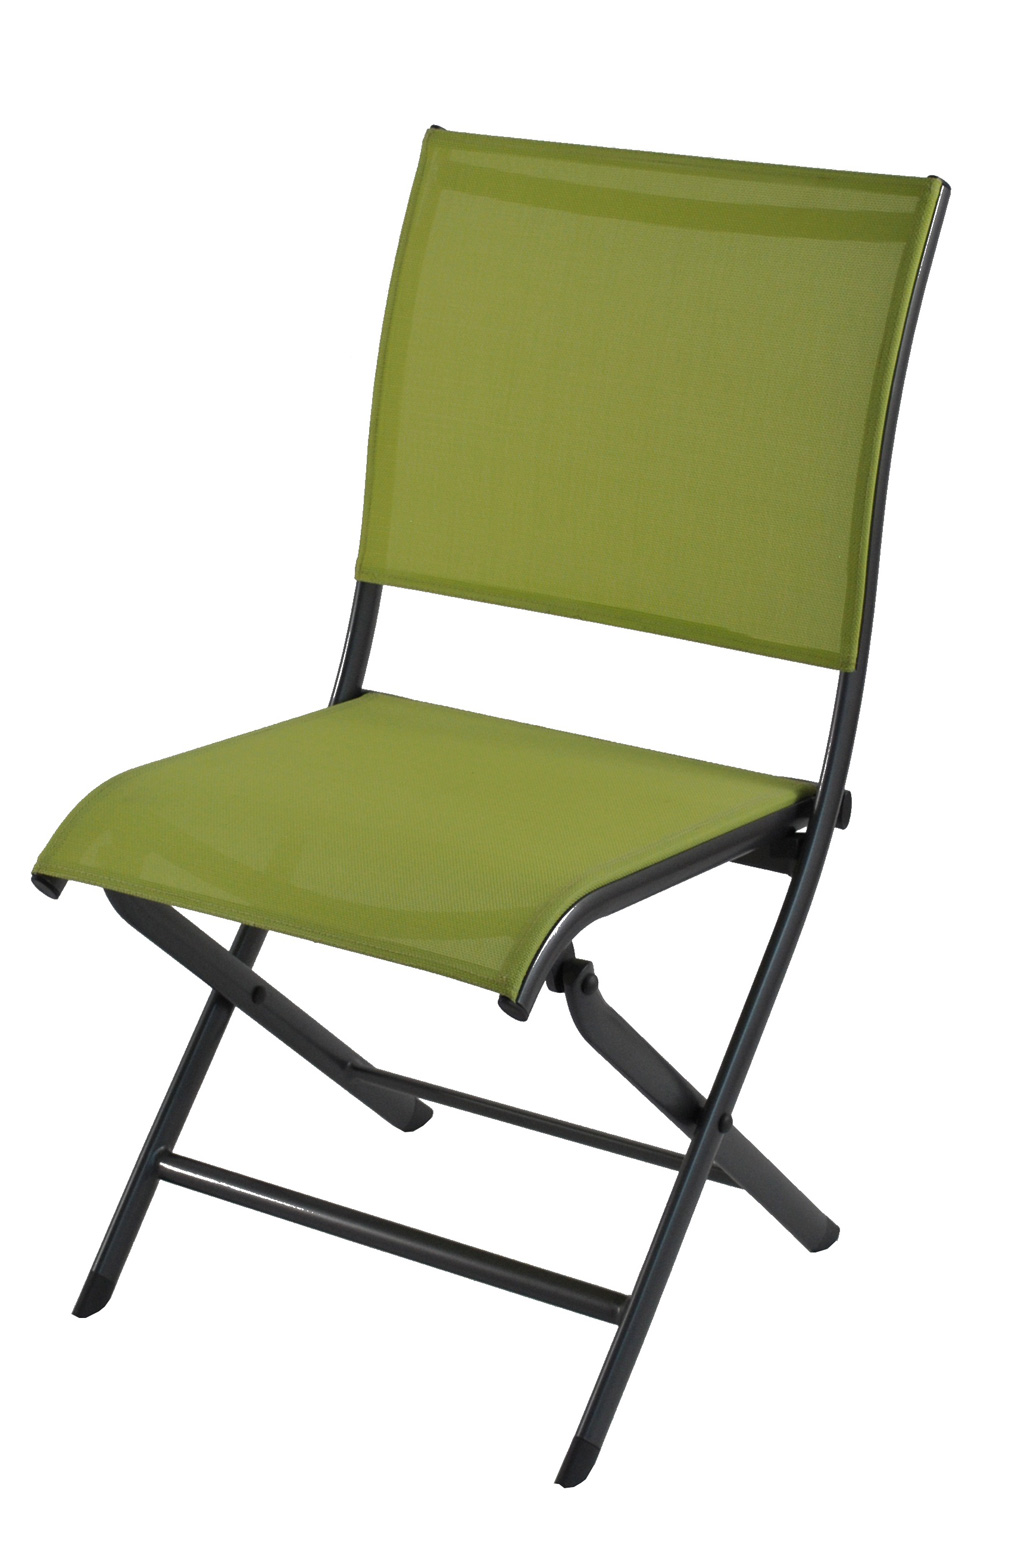 Chaises Royales Chaise Elegance Oceo Royal Lime Sun Mobilier